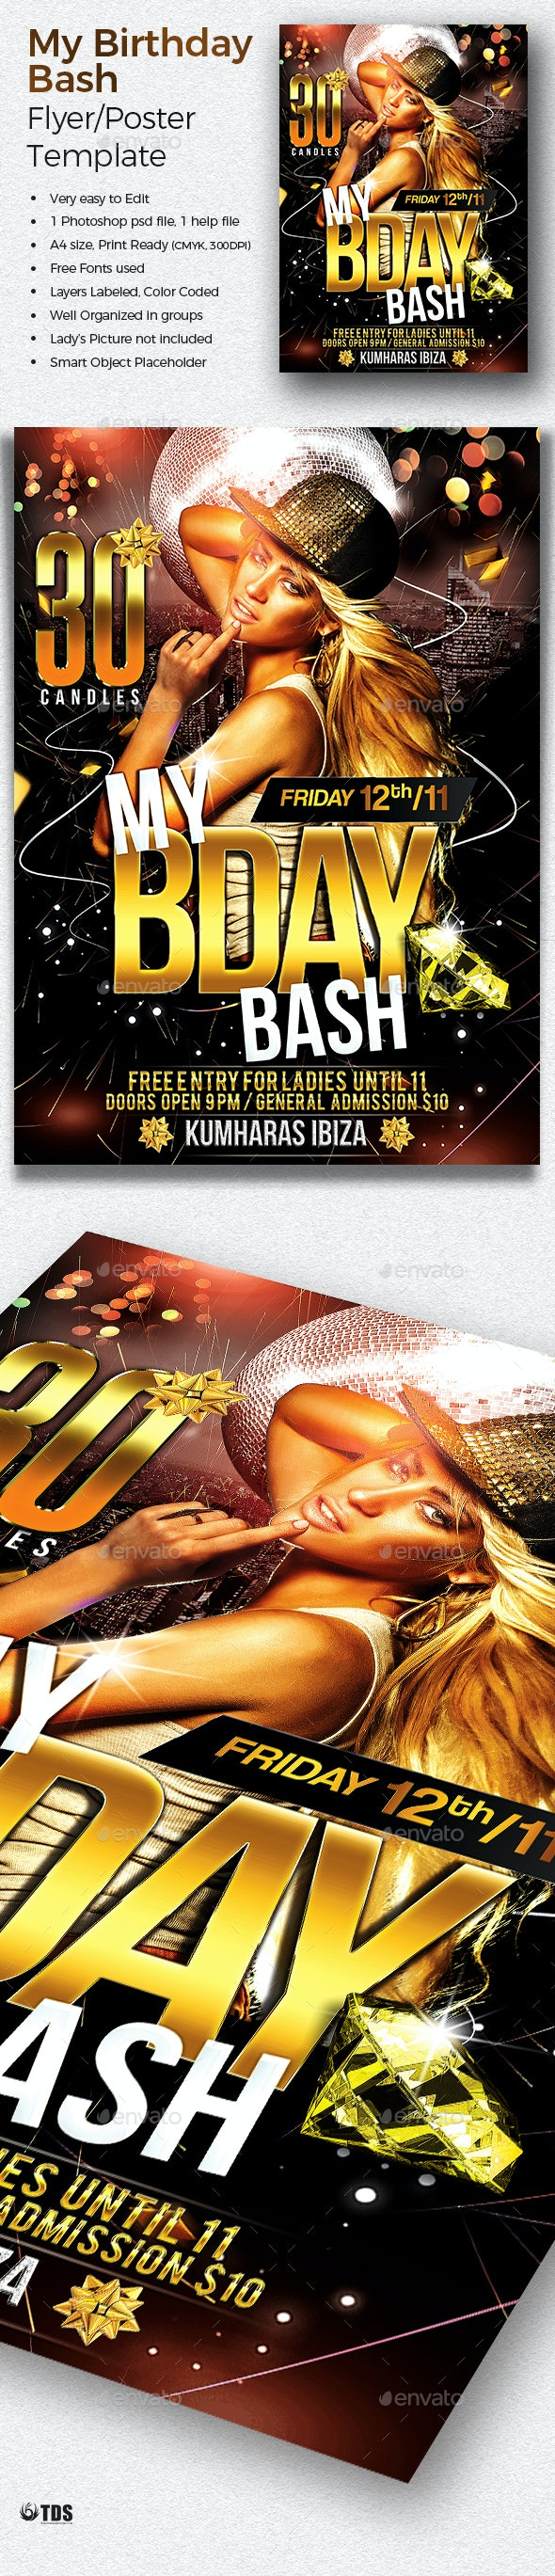 My Birthday Bash Flyer Template - Clubs & Parties Events